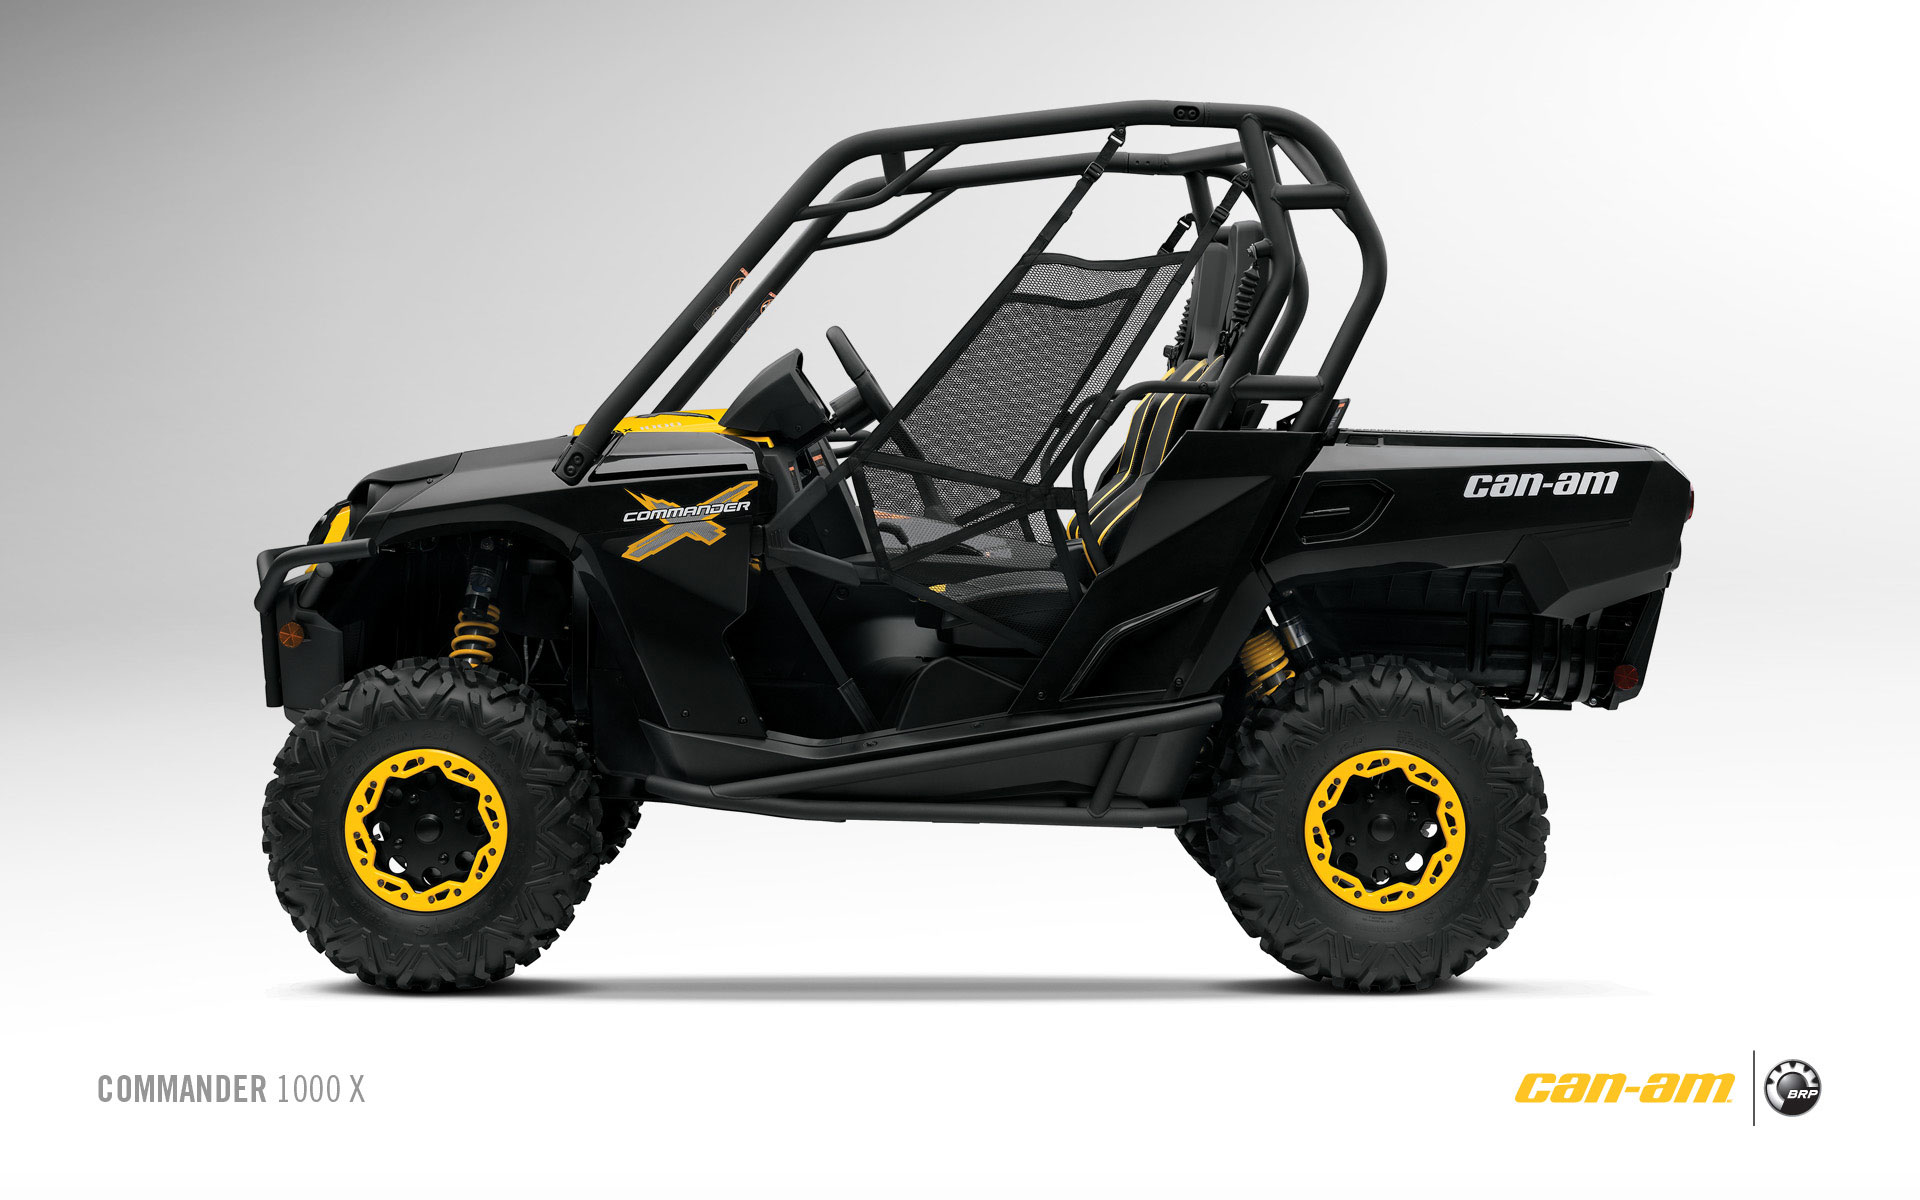 can-am/ brp commander 1000 x (2011 - 2012)